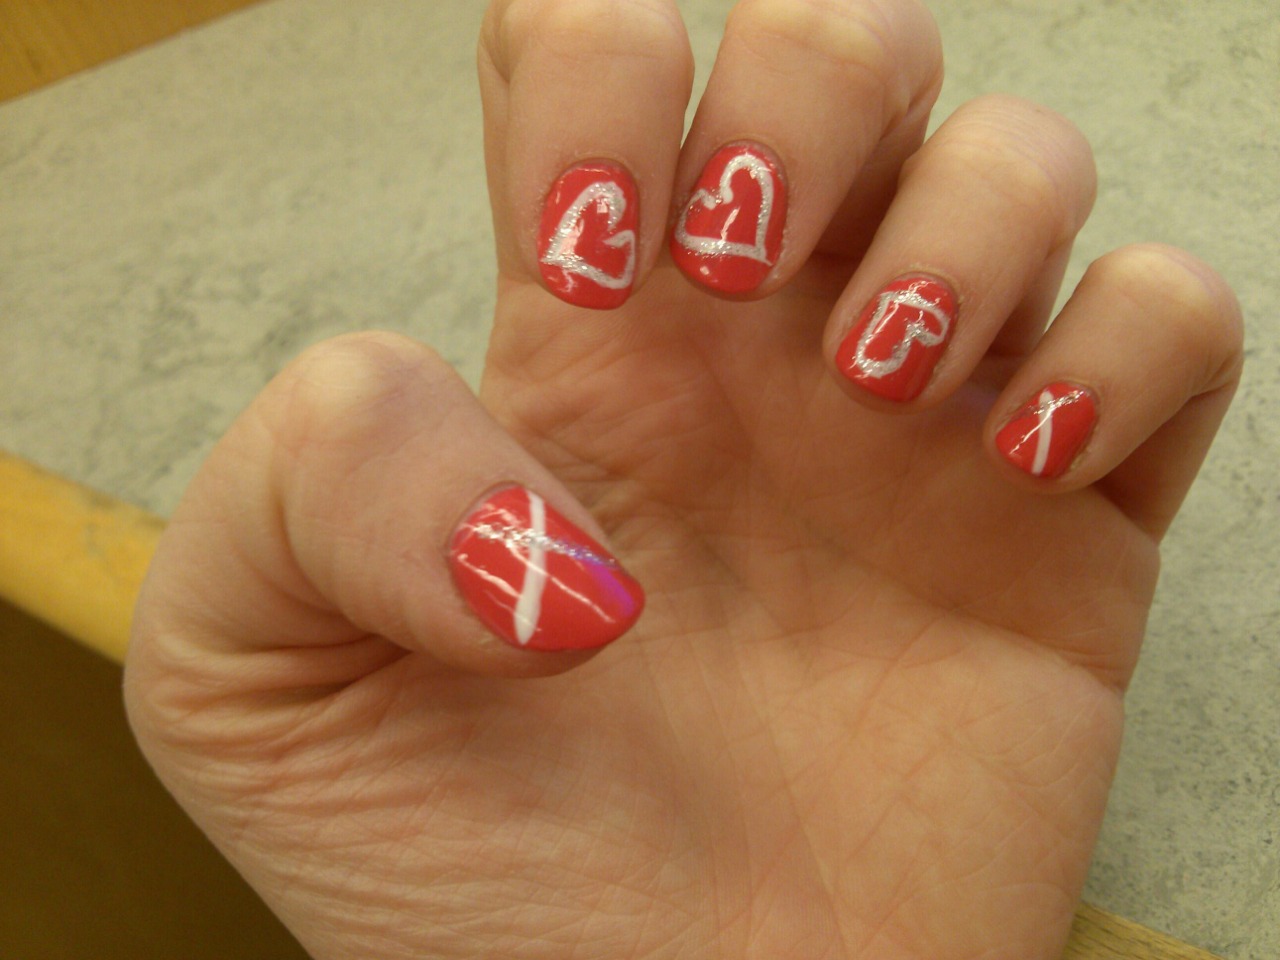 @istepfunny's Valentines Day nails